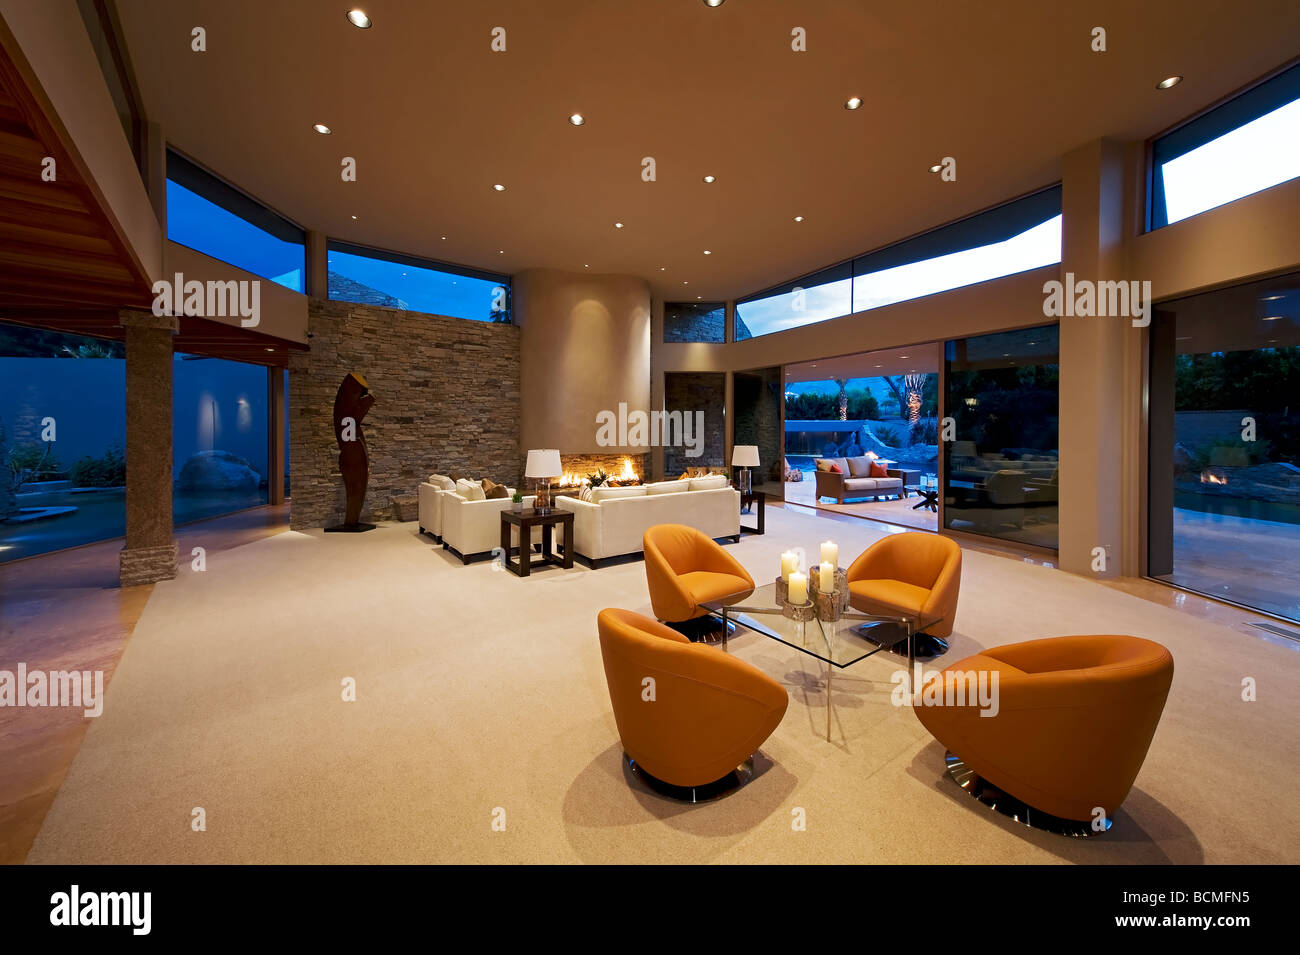 . Ultra modern living room with walls of glass and spars furnishings